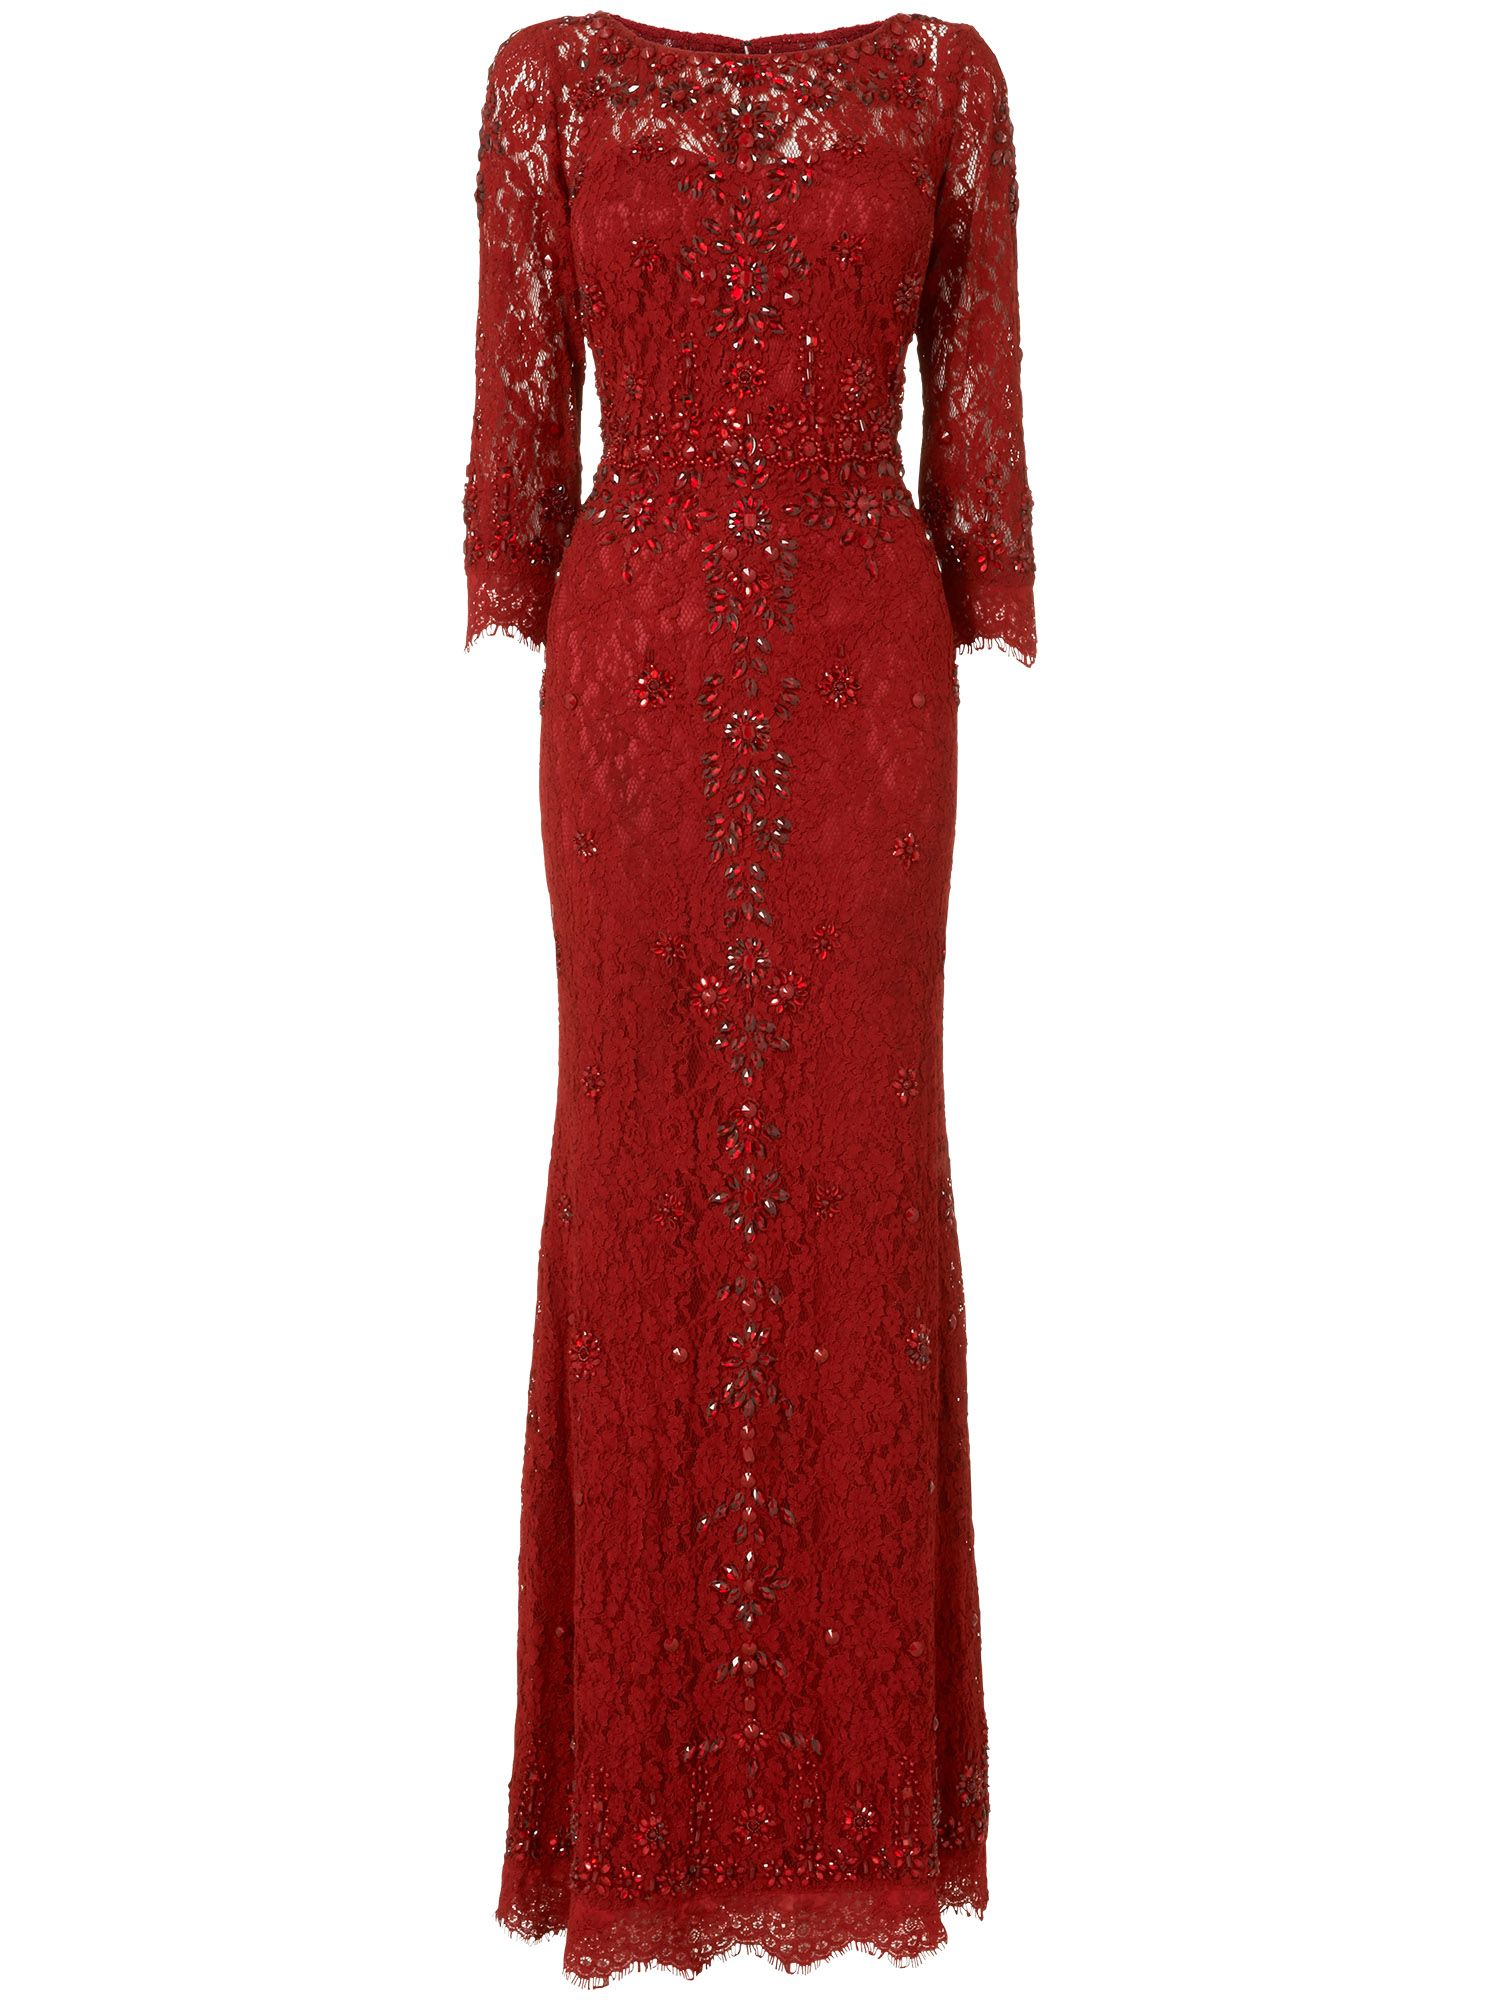 Tahlia embellished full length dress